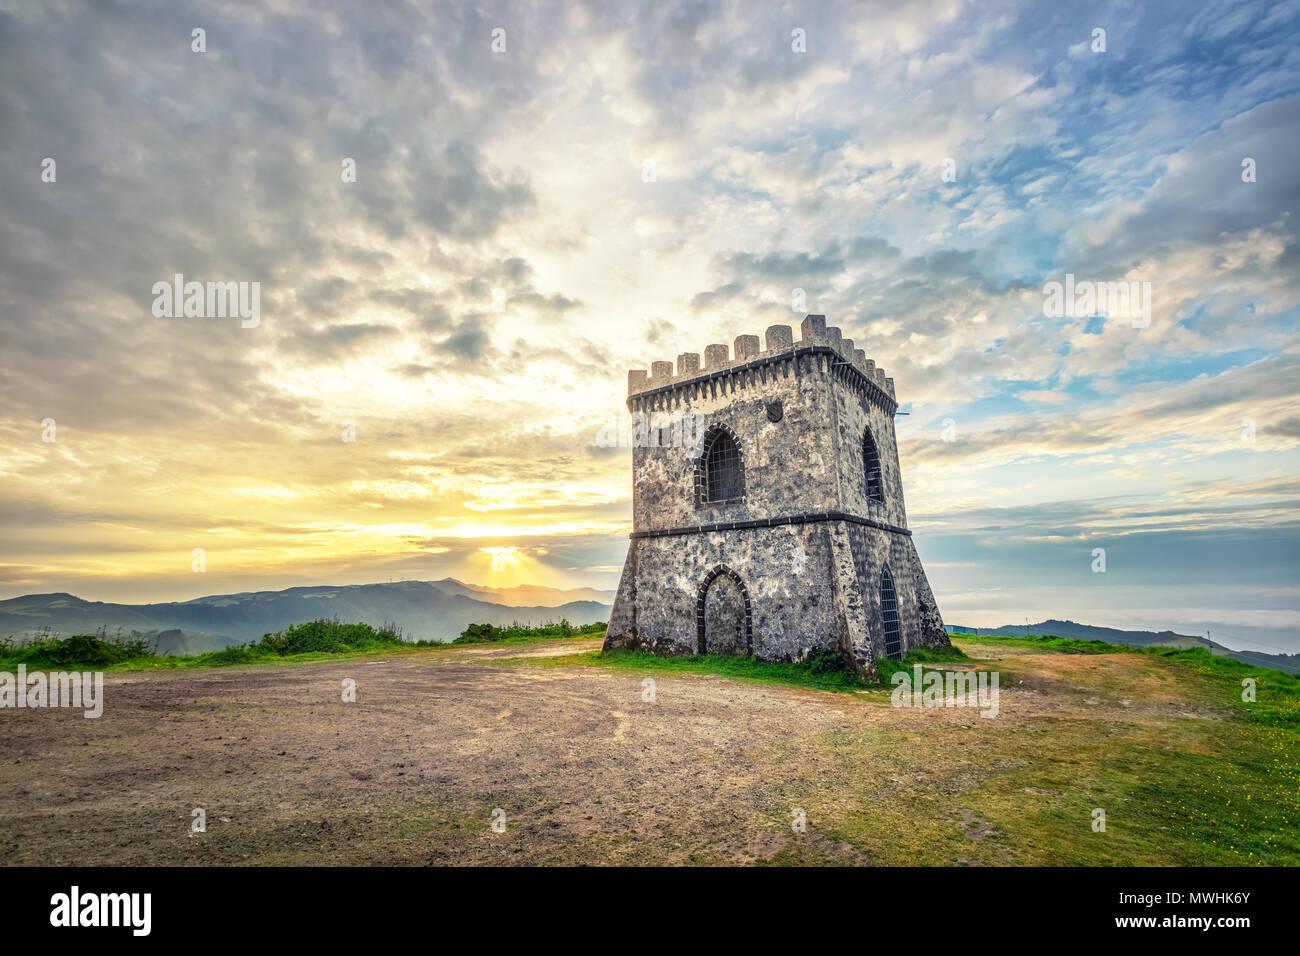 Castelo Branco Viewpoint on sunrise, Sao Miguel island, Azores, Portugal - Stock Image